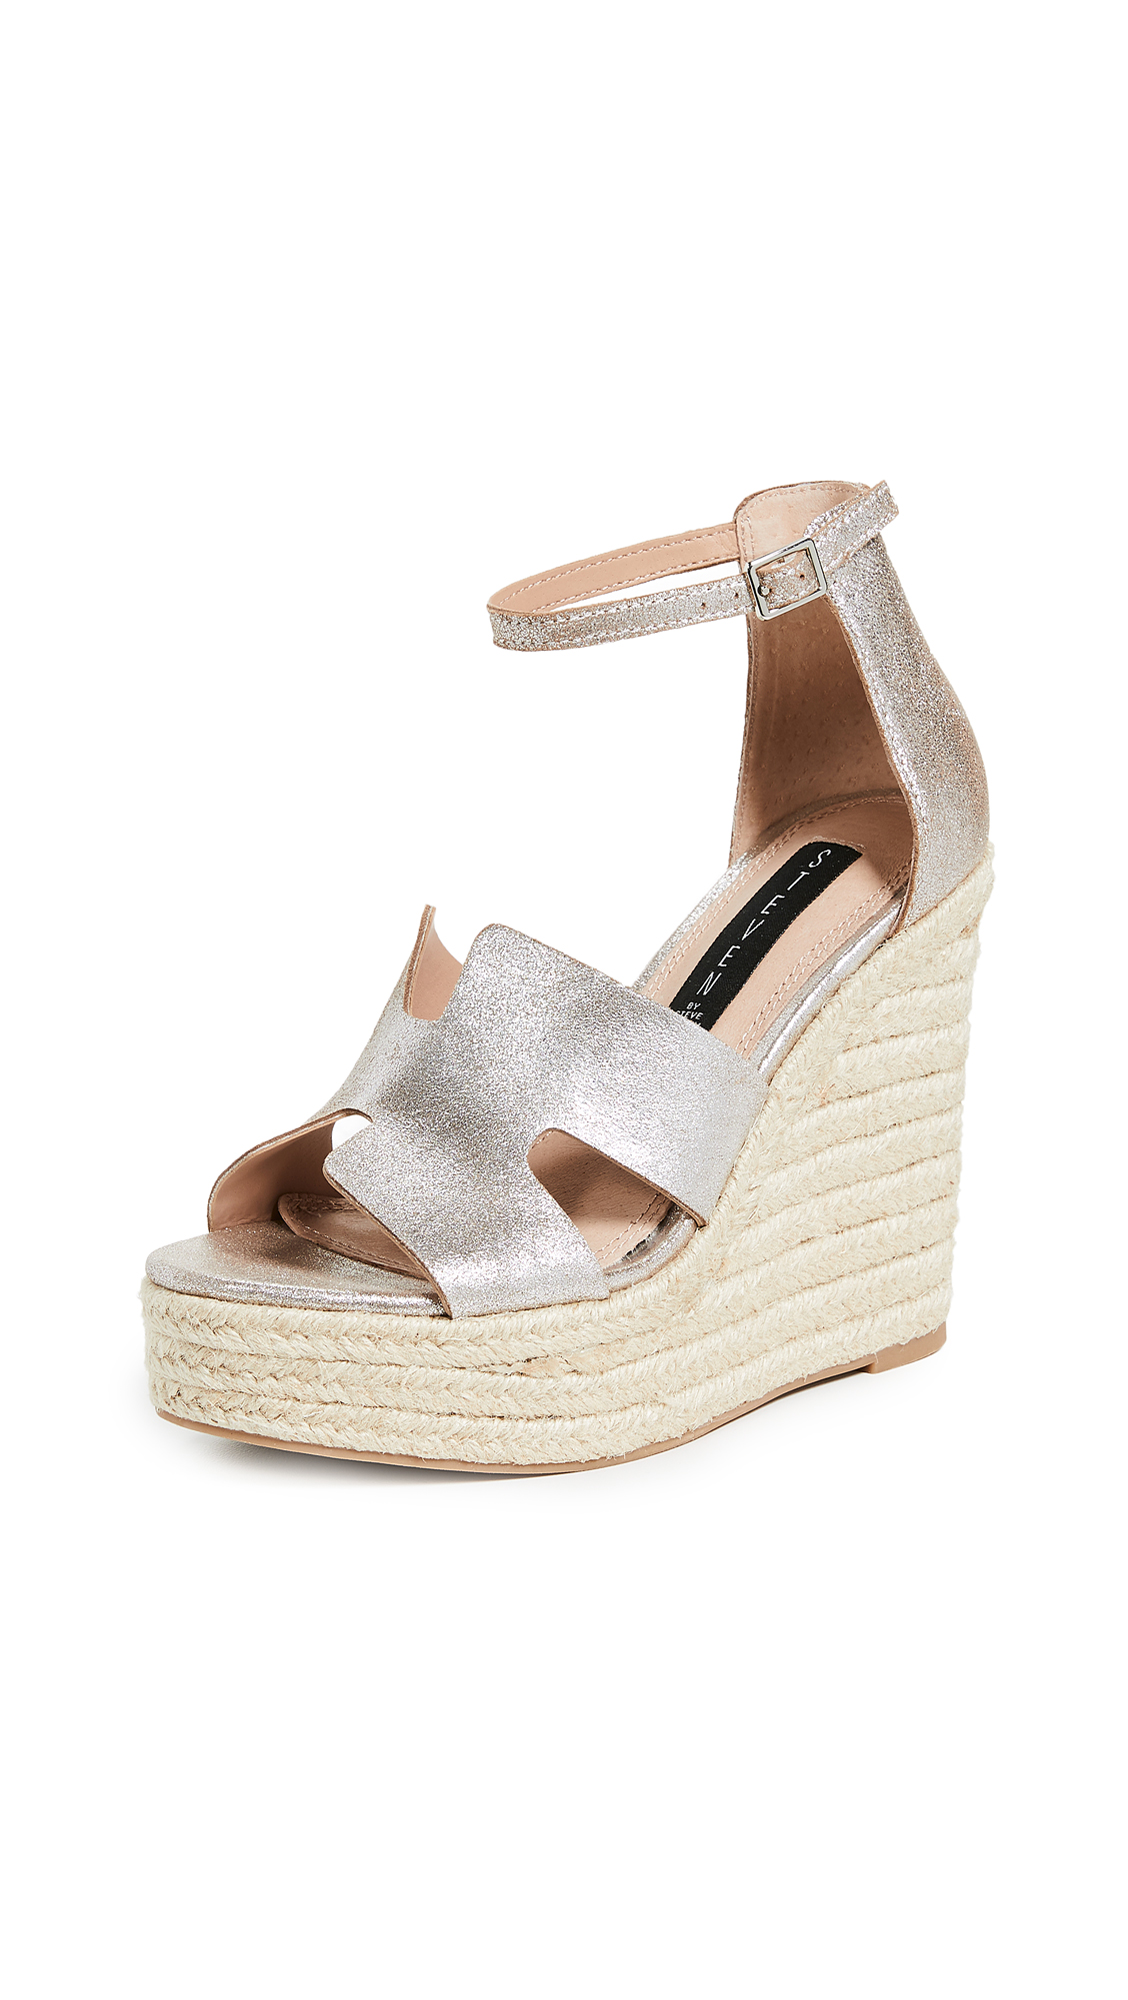 Steven Sirena Wedge Espadrilles - Rose Gold